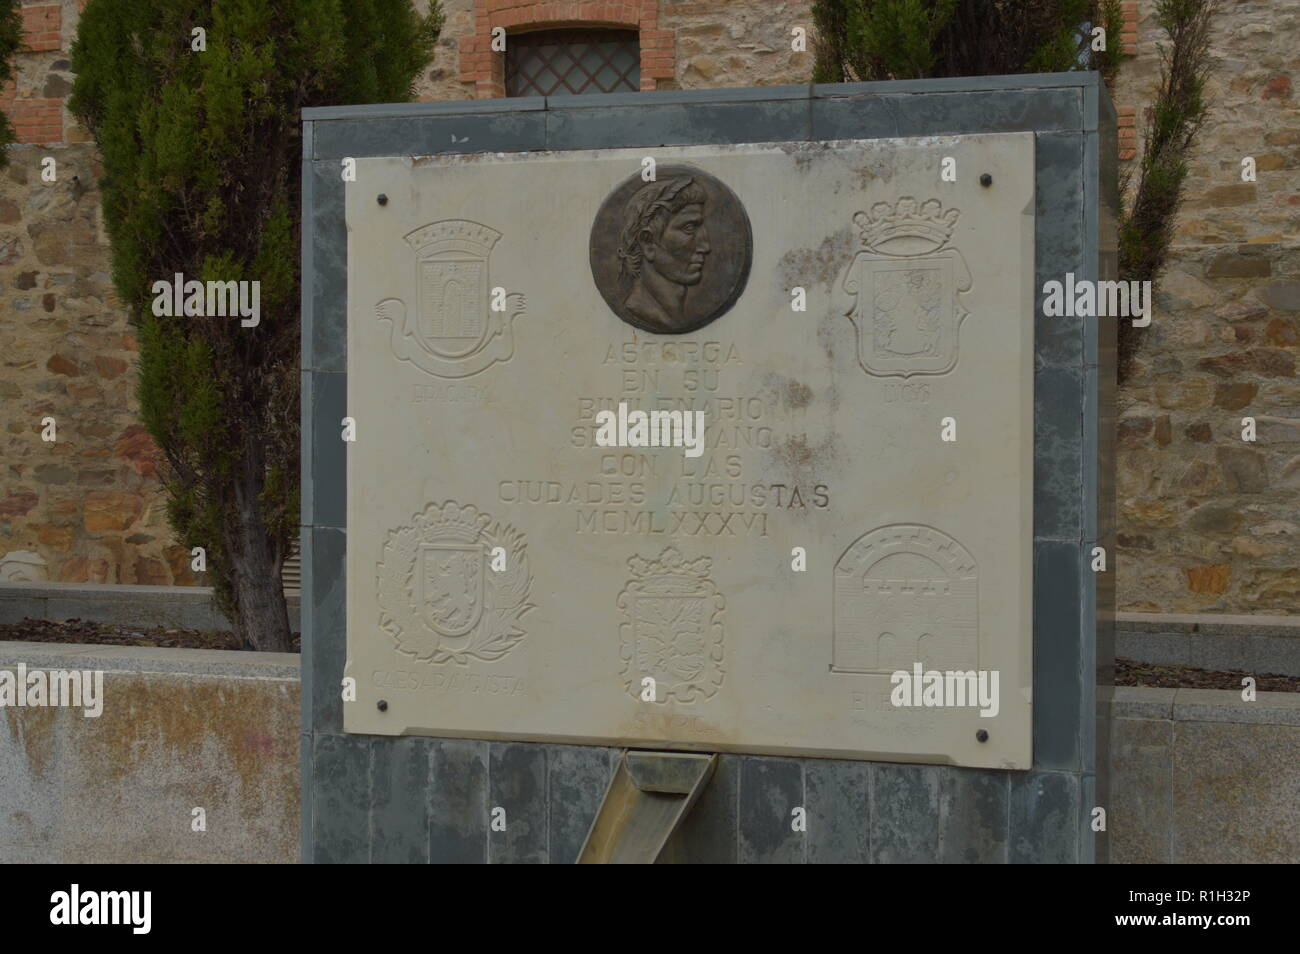 Monument To His Two Thousand Year With The Shields Of His Twin Cities Augustas On A Cloudy Day In Astorga. Architecture, History, Camino De Santiago,  - Stock Image